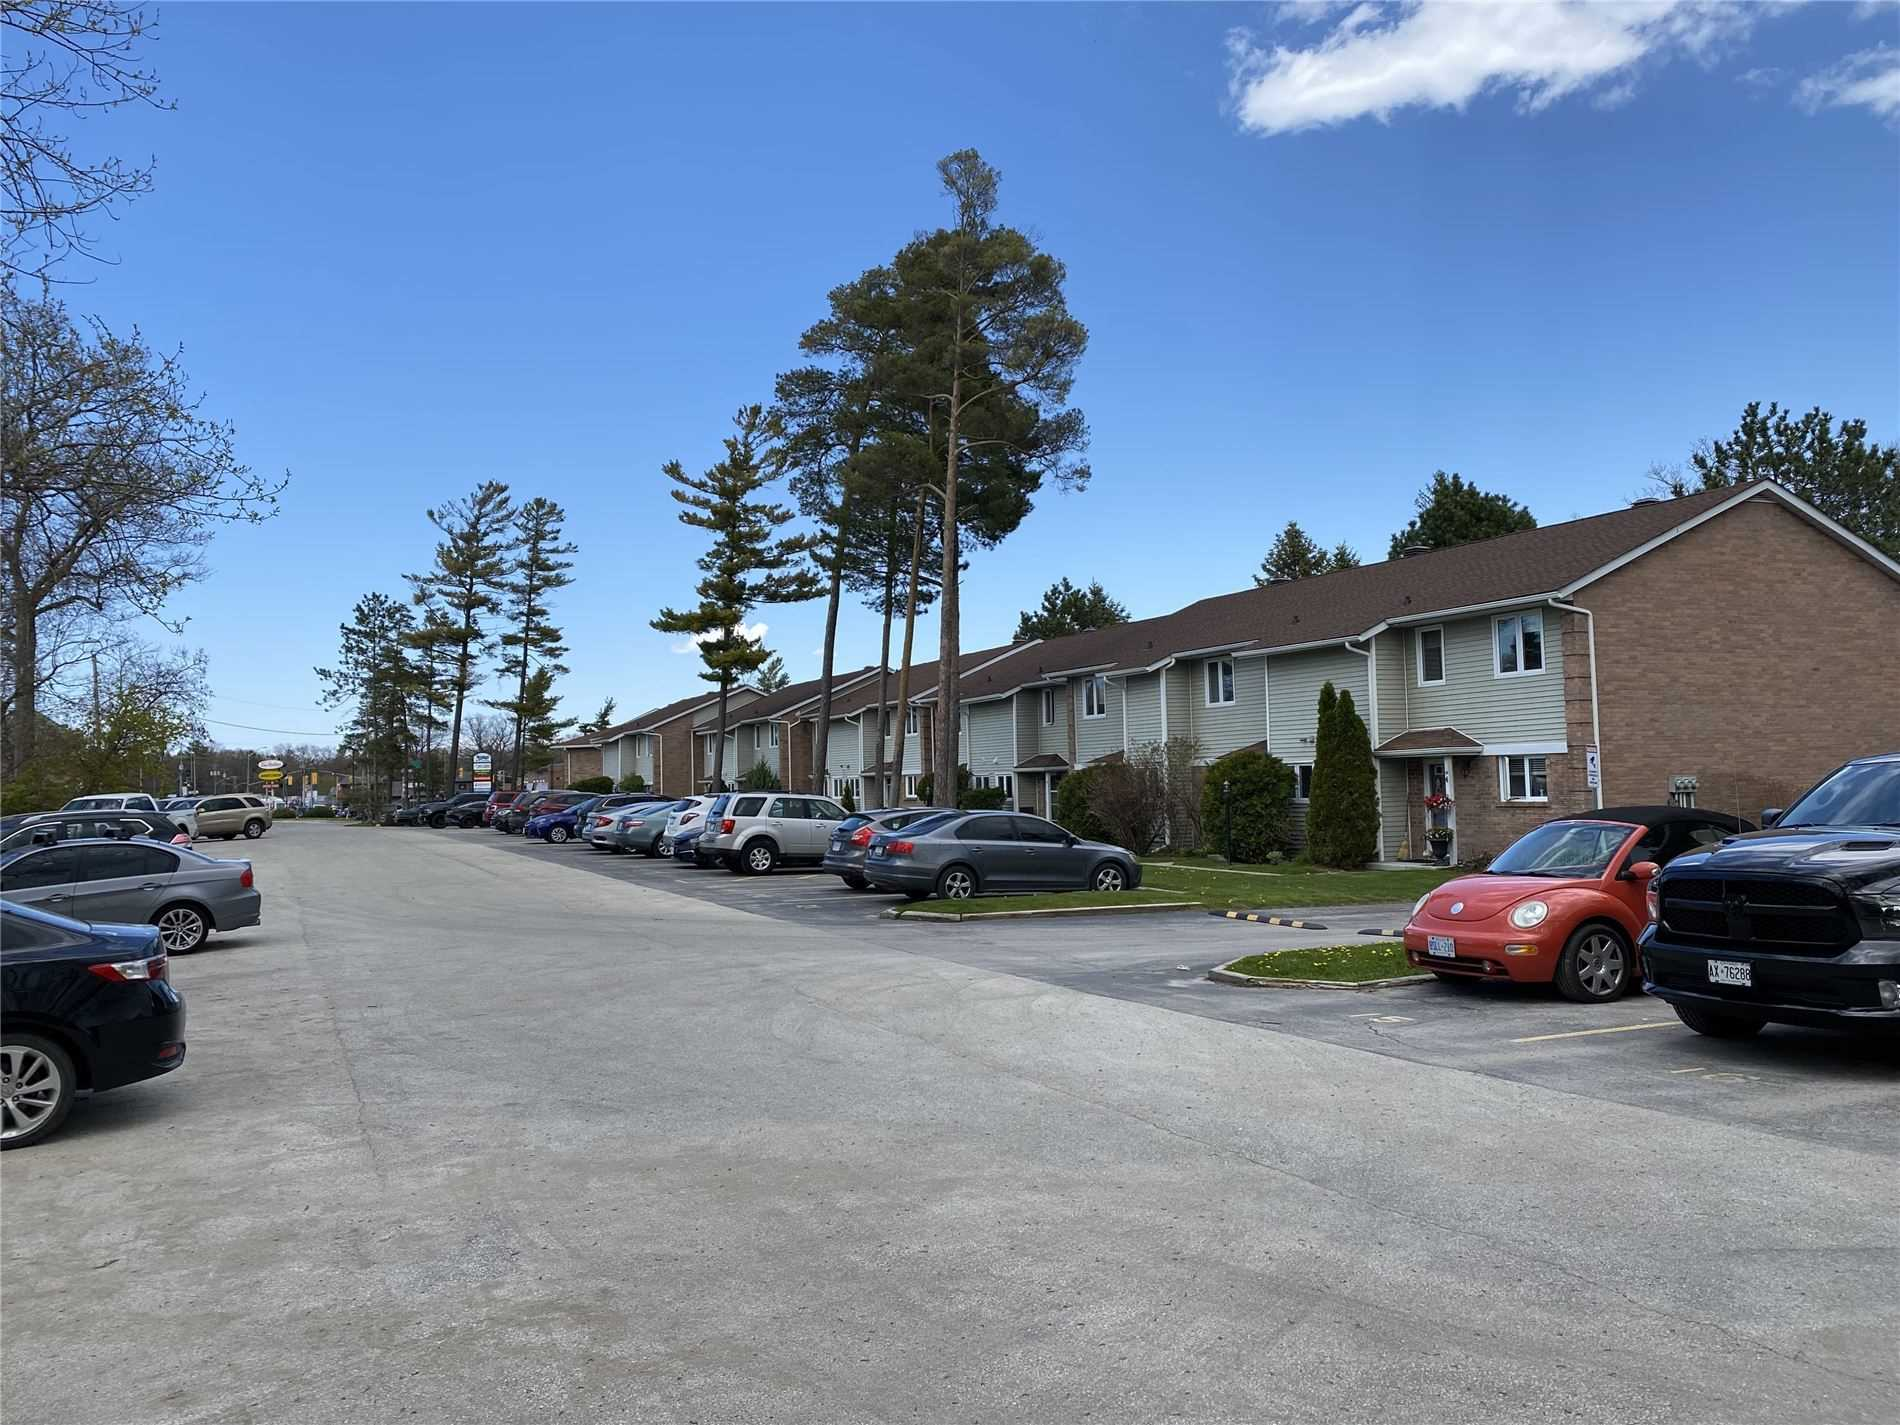 pictures of 39 28th St S, Wasaga Beach L9Z2E4